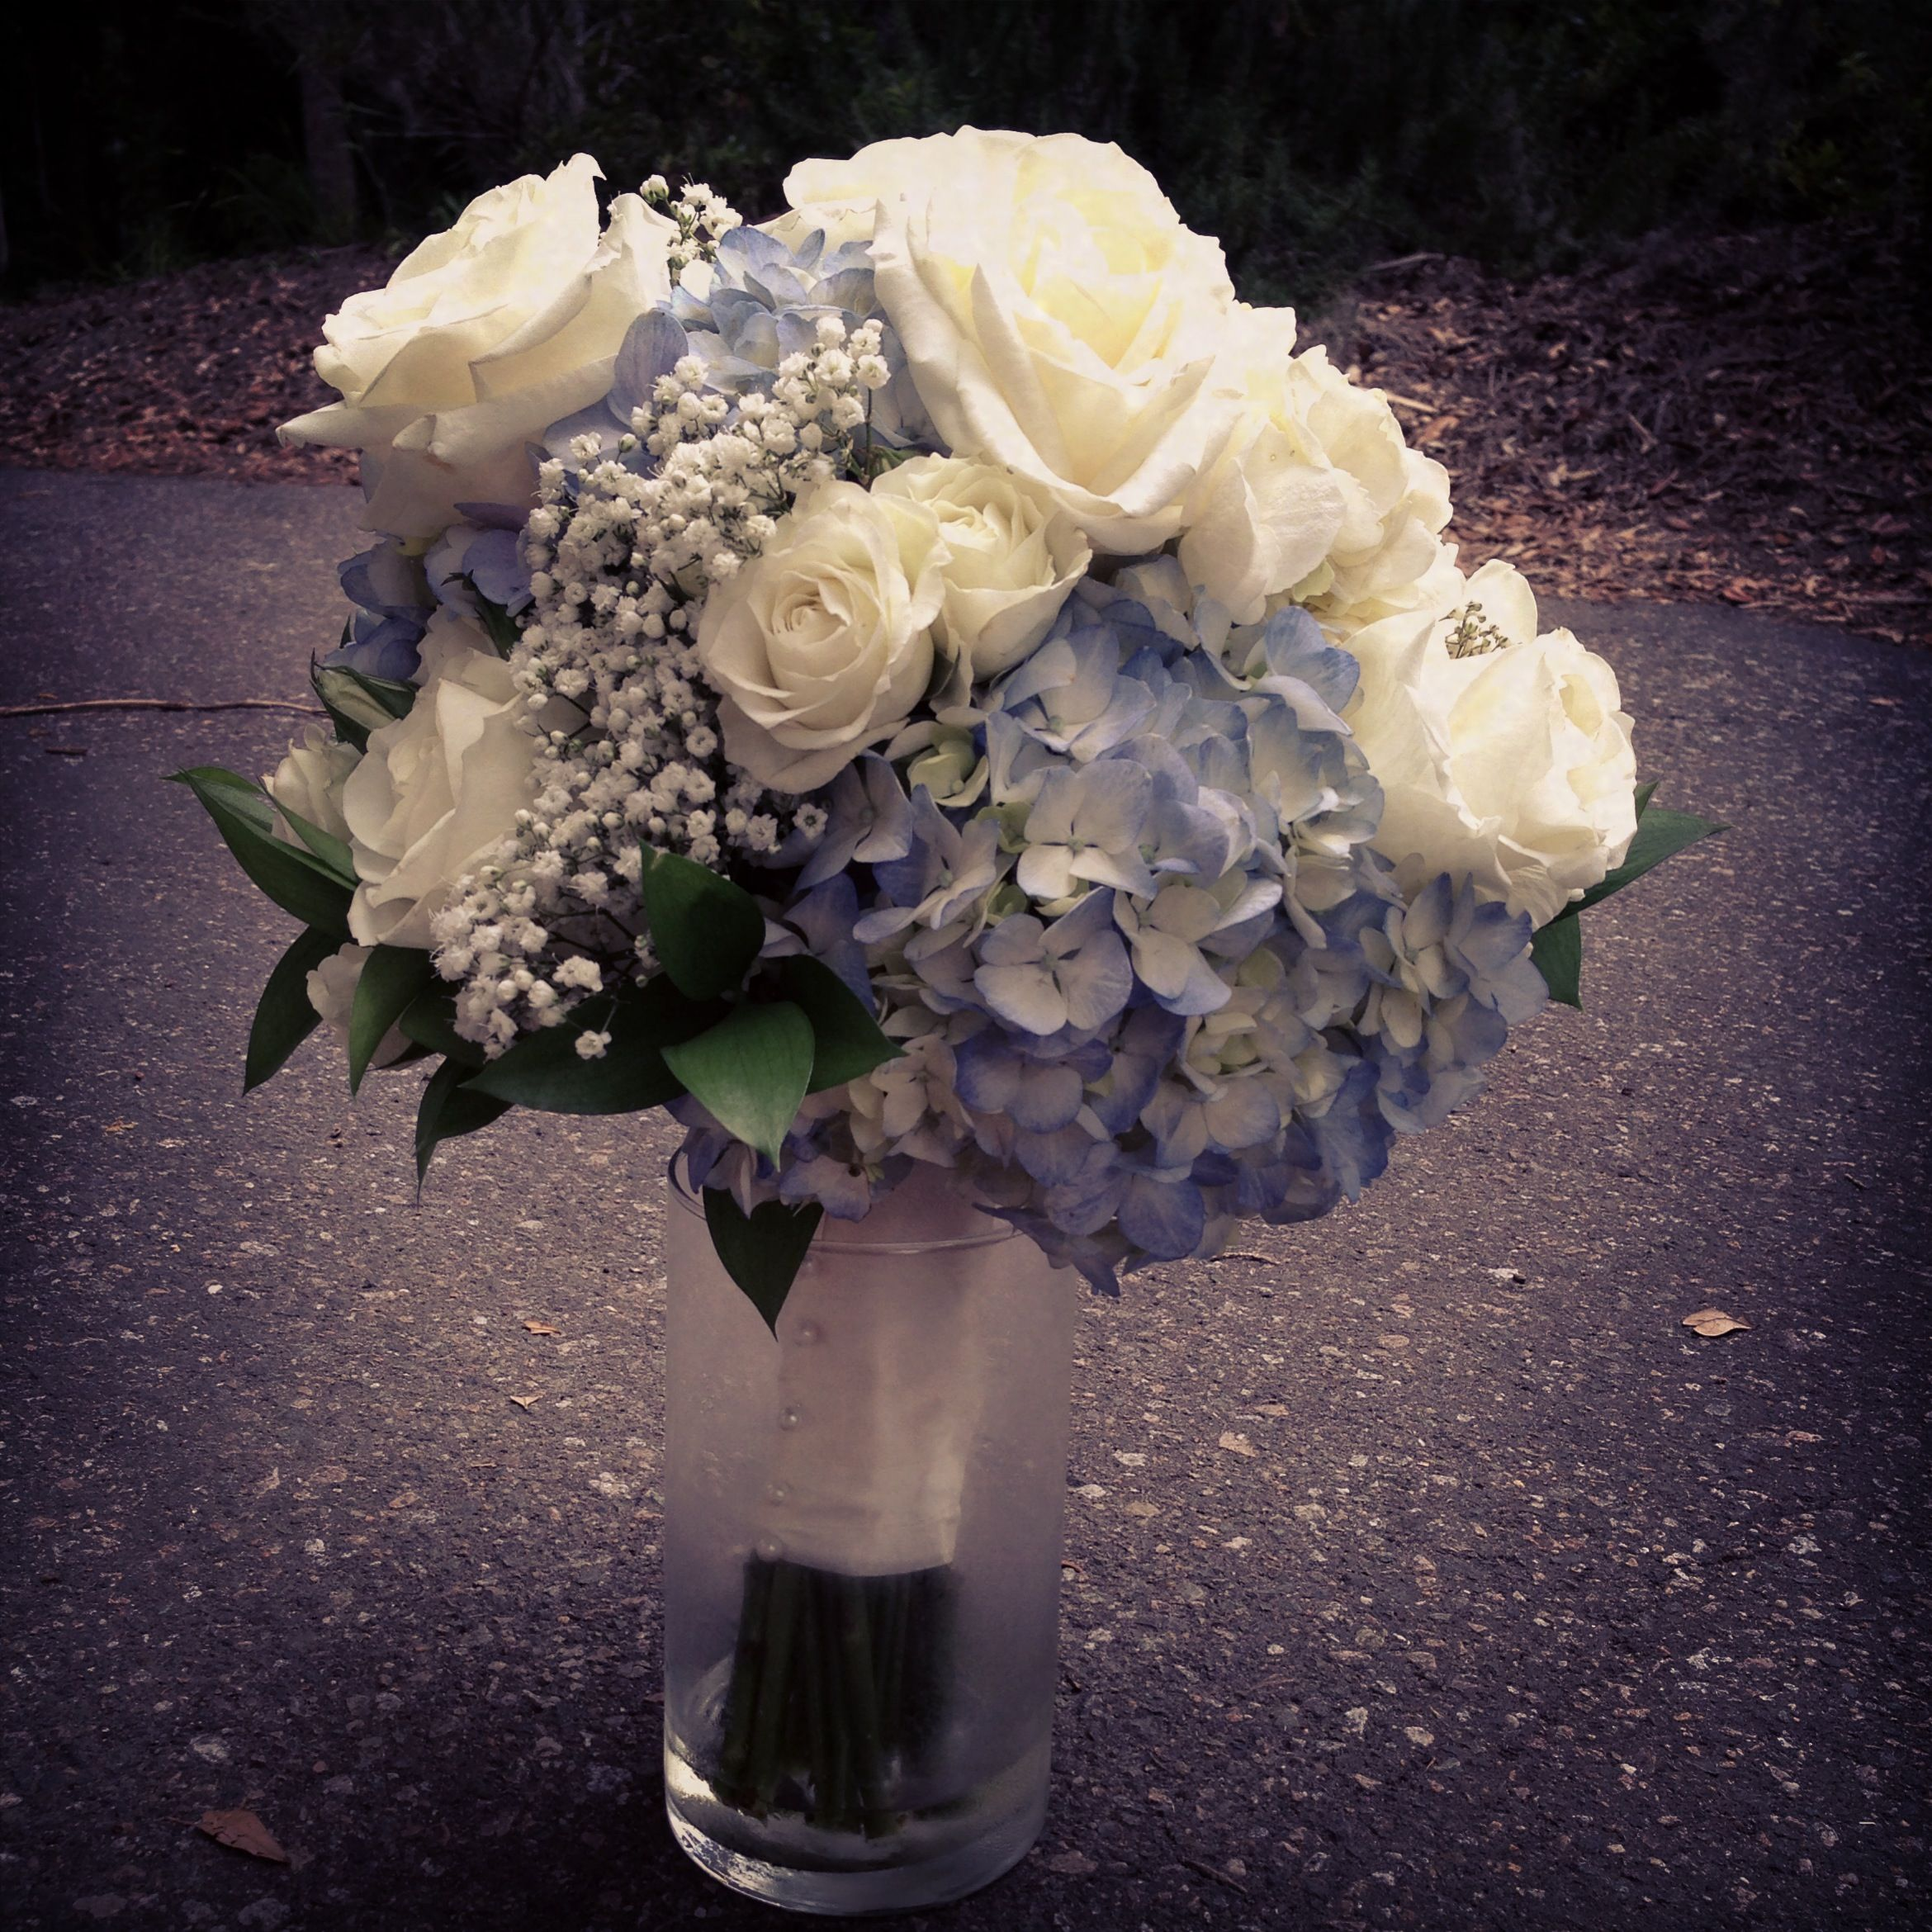 Blue Hydrangeas White Roses Baby S Breath Bridal Bouquet Bridal Bouquet Summer Flower Bouquet Wedding Hydrangea Bouquet Wedding